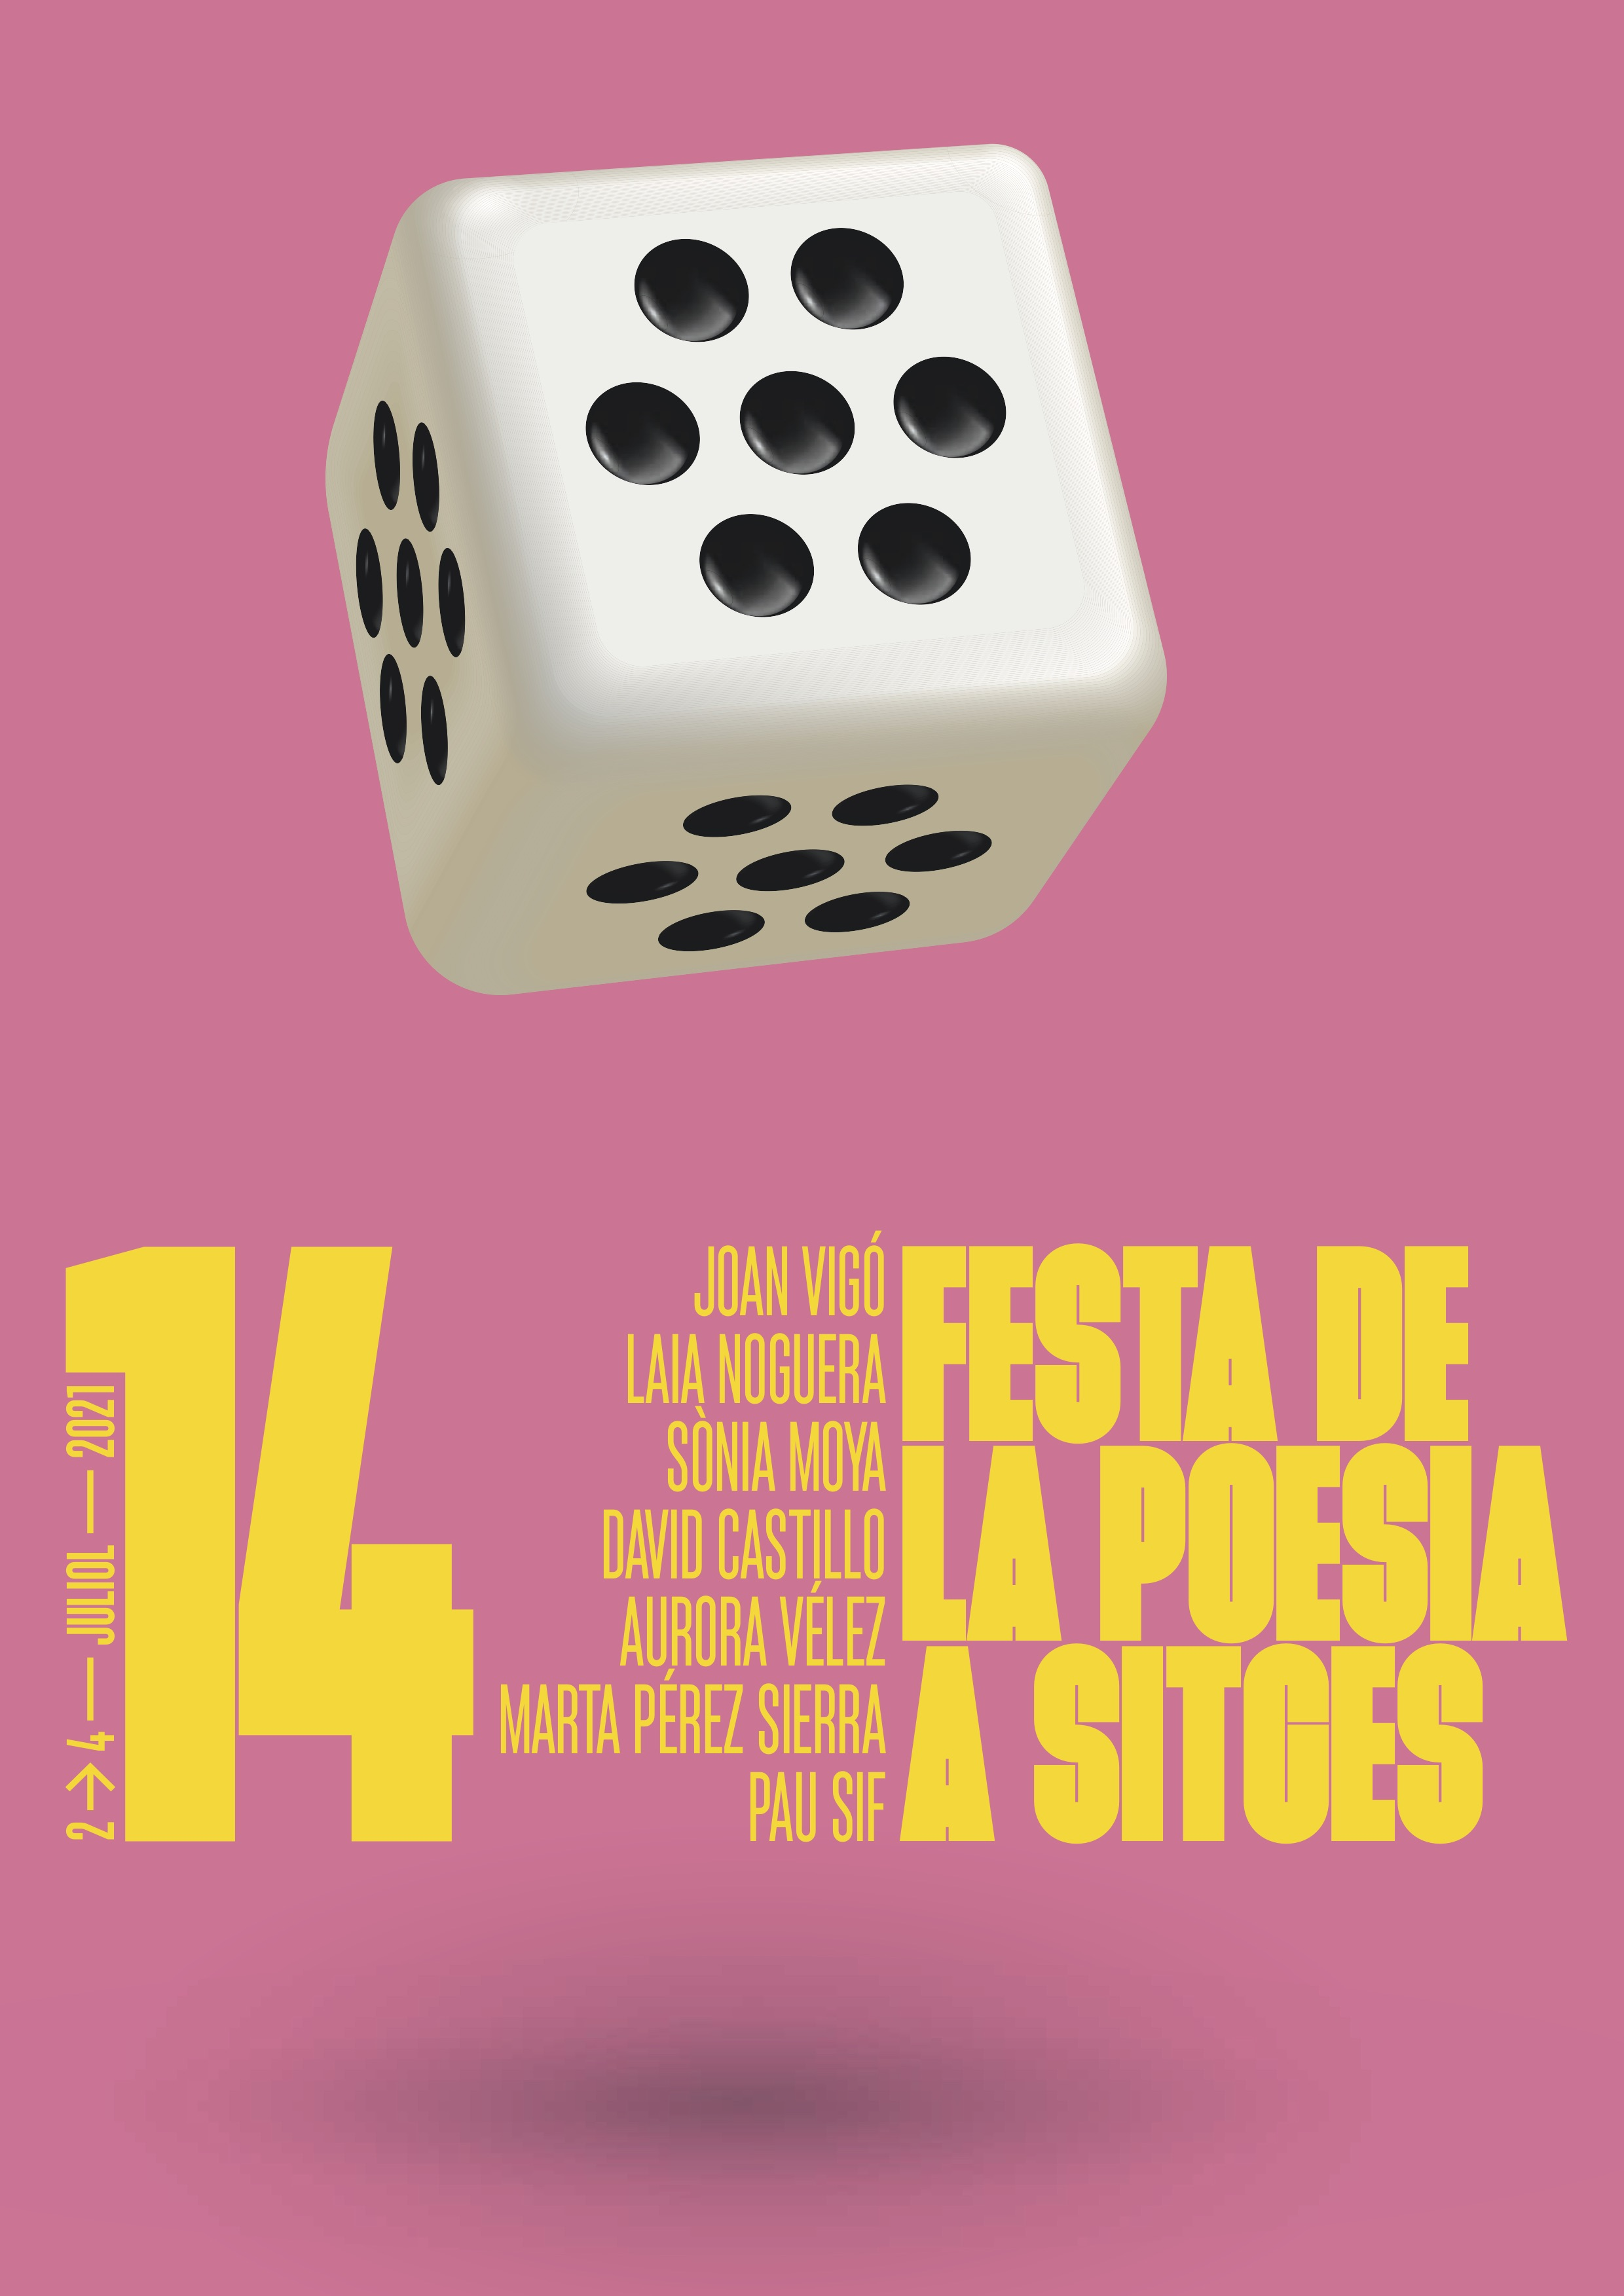 Cartell Festa Poesia Sitges 2021